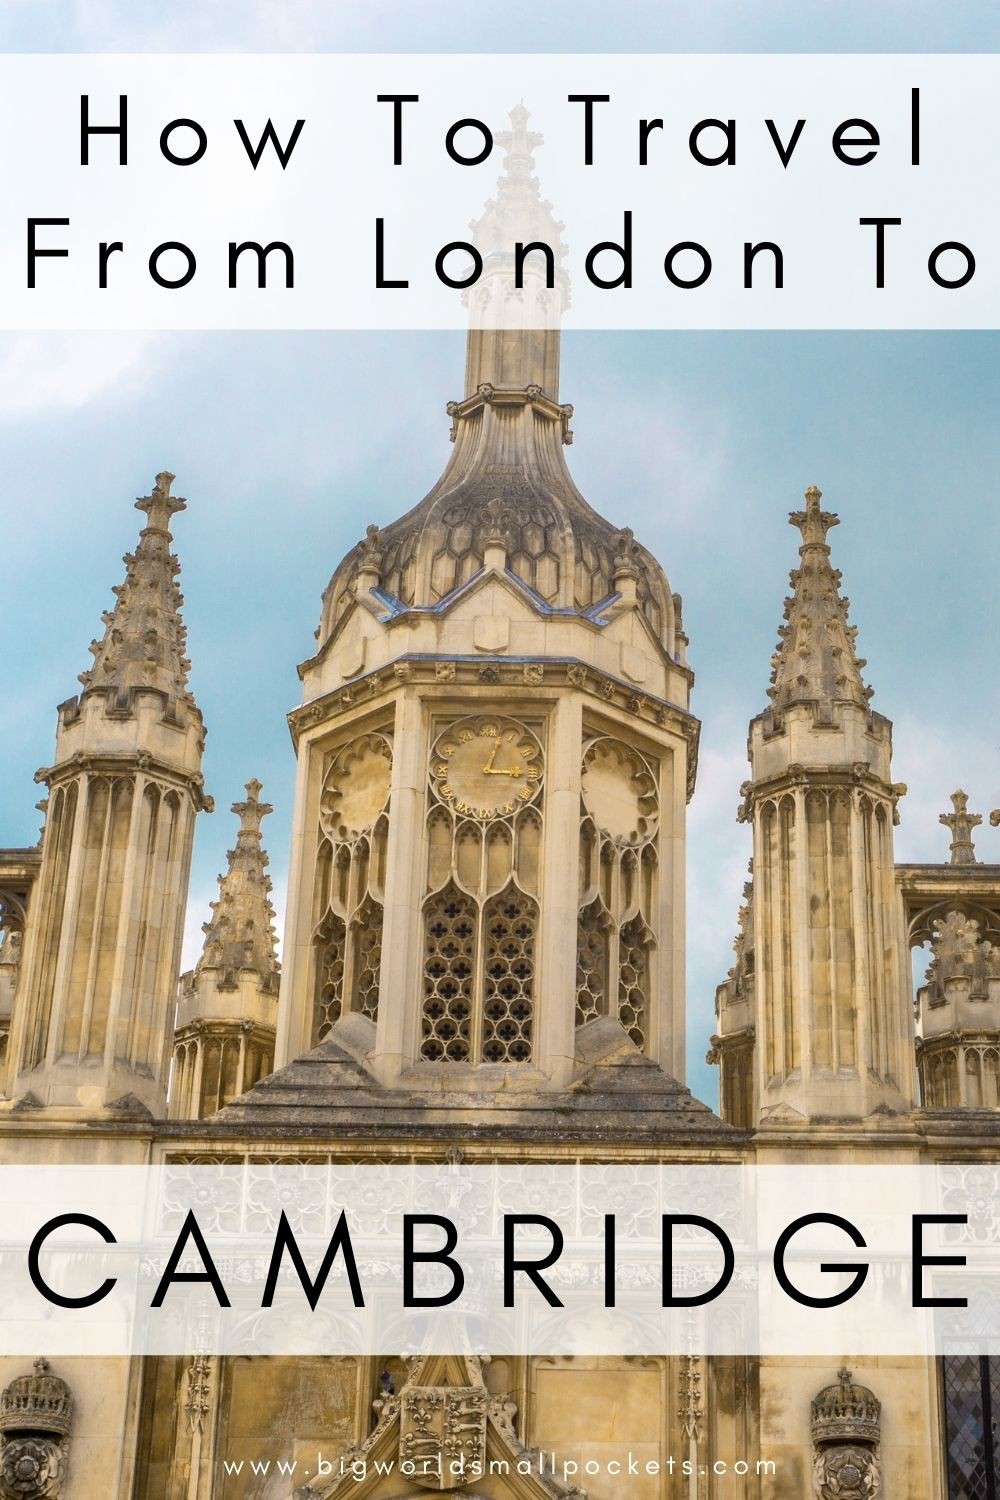 How To Travel From London to Cambridge, UK